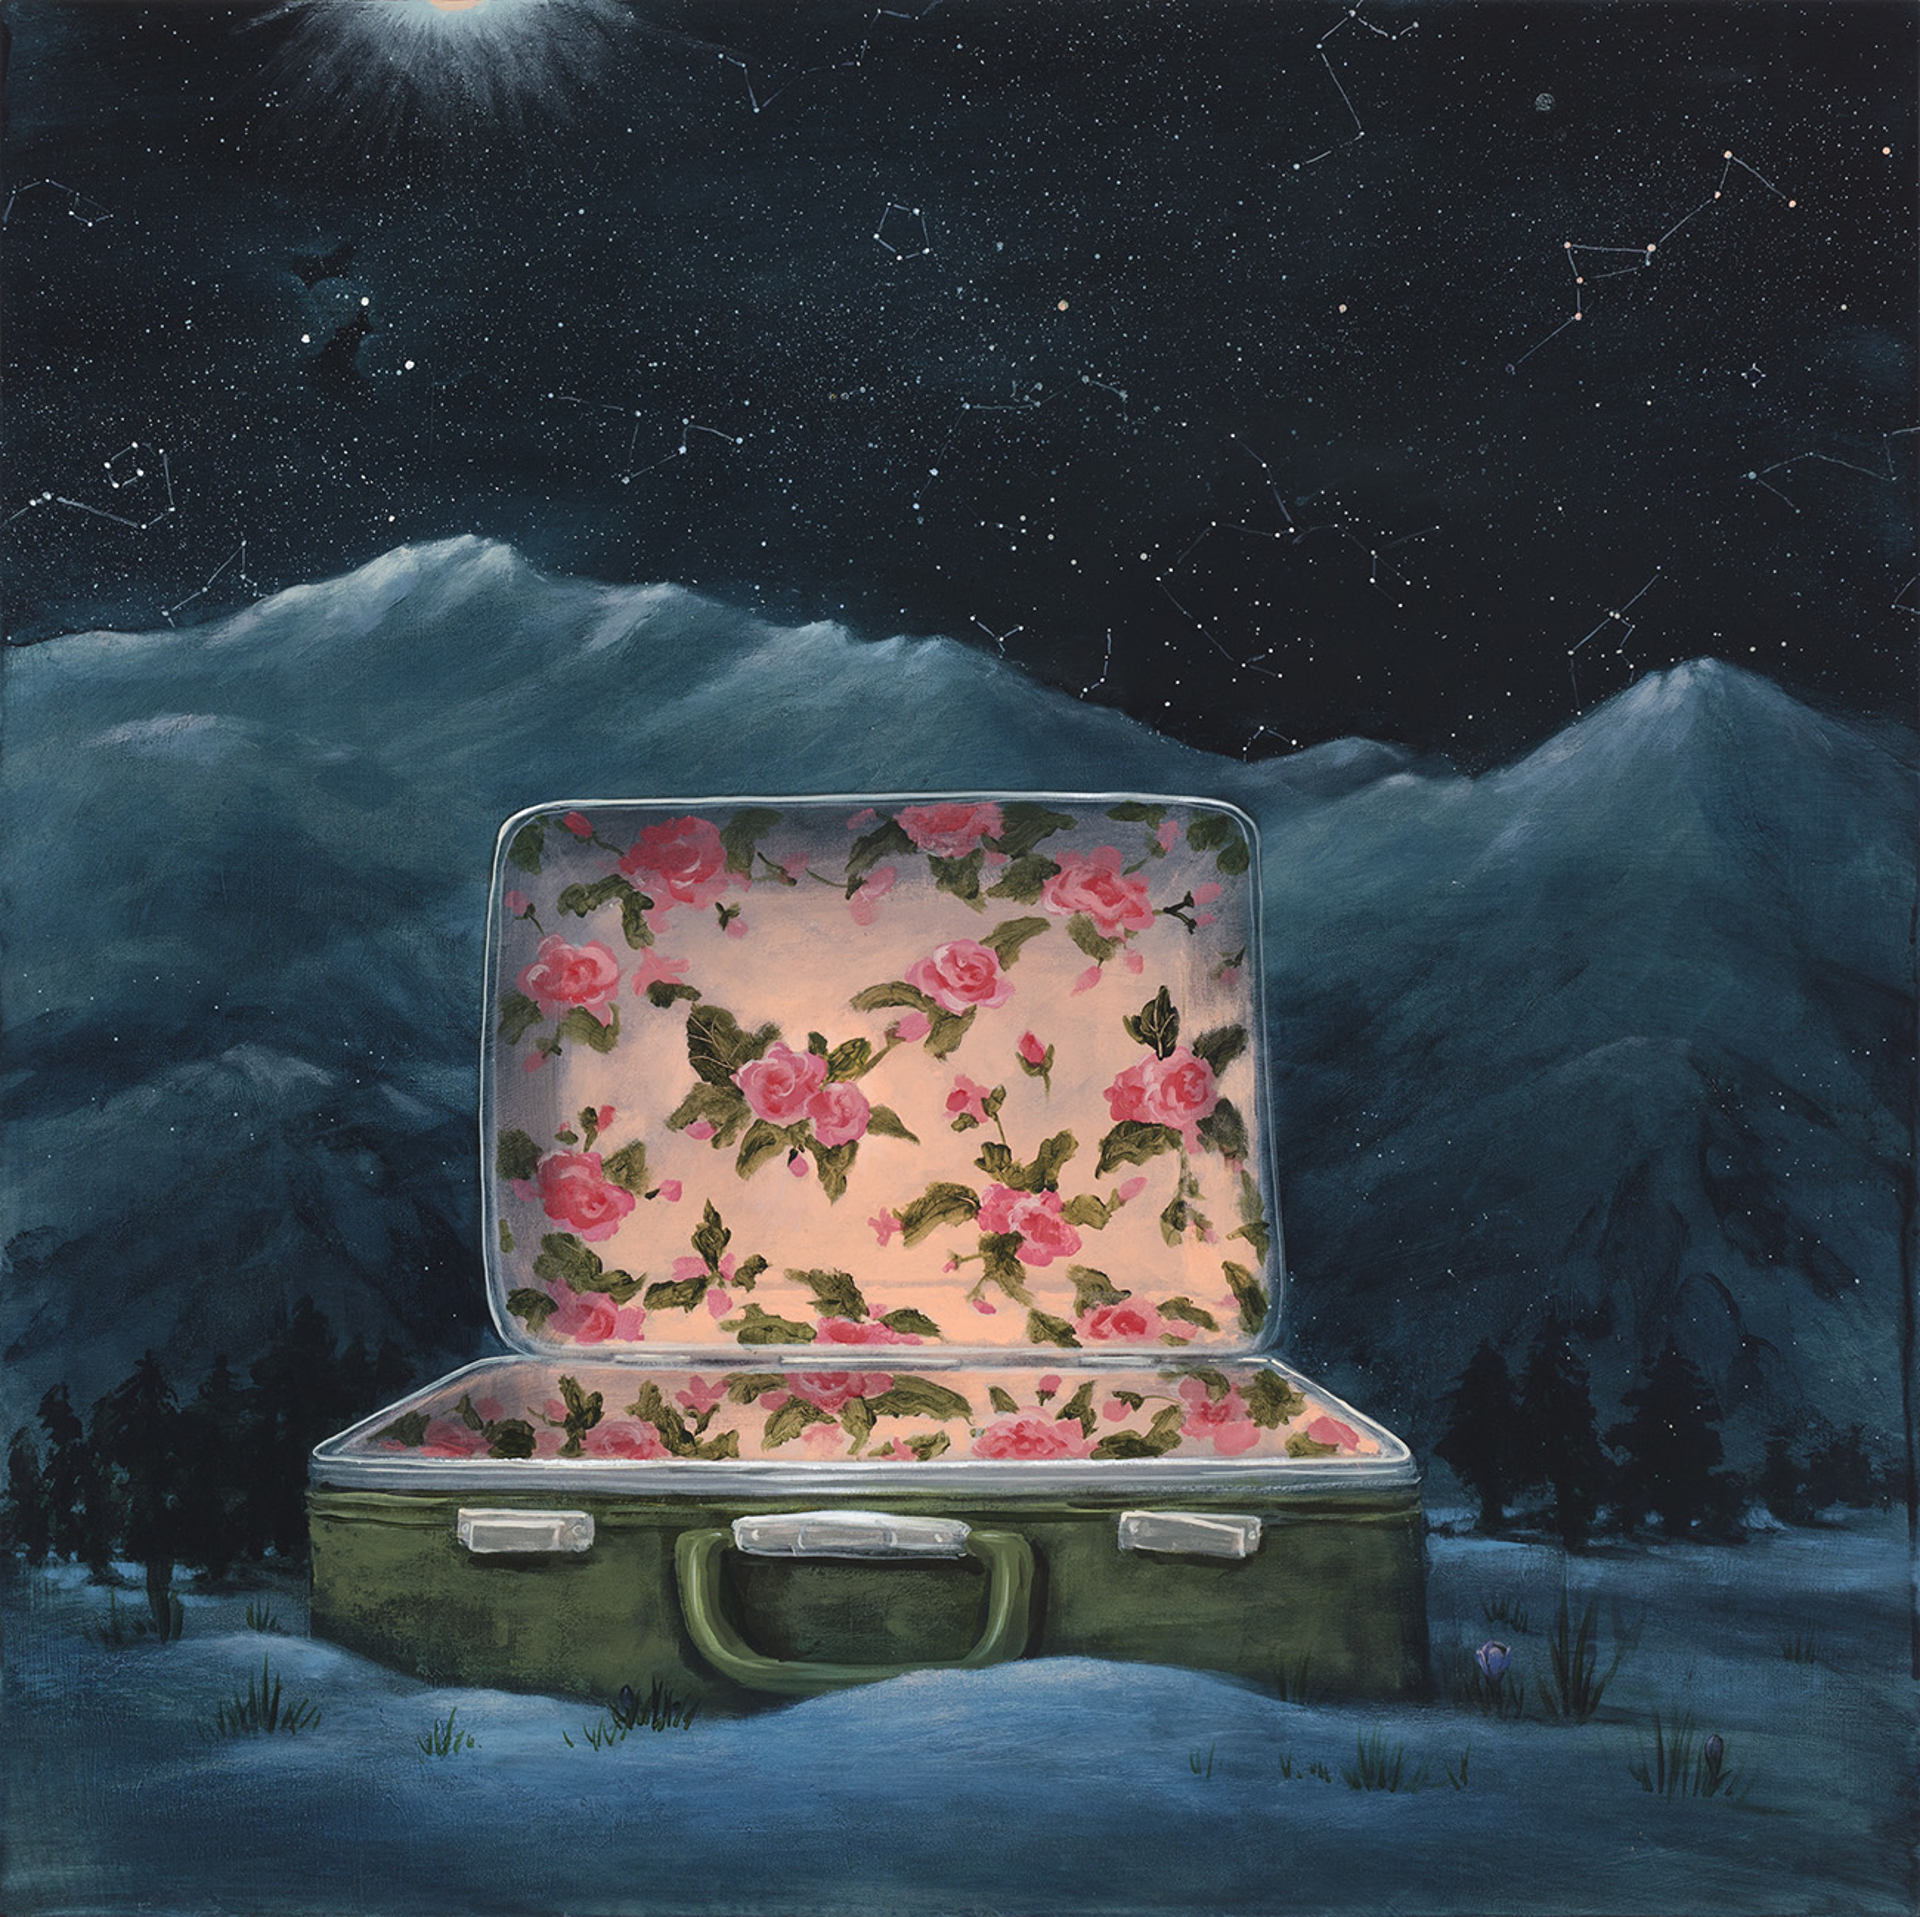 The Night Before Spring by Kevin Sloan